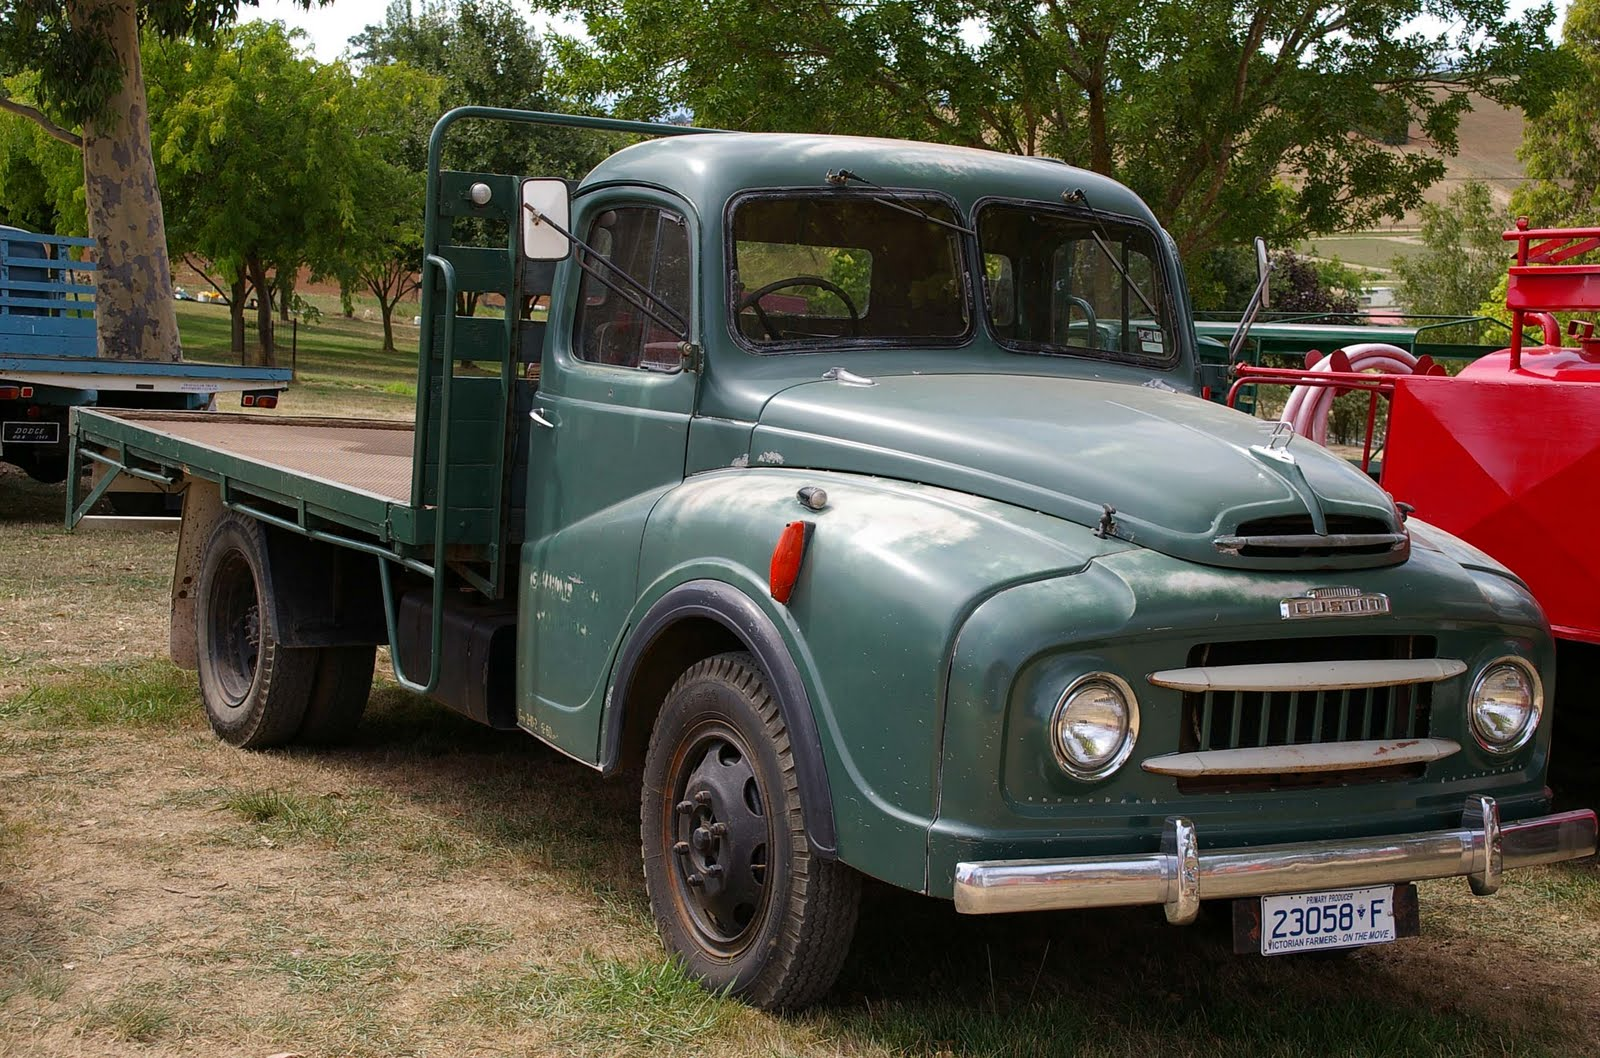 sugarpetite: Historic trucks blogspot comes across cool old trucks ...